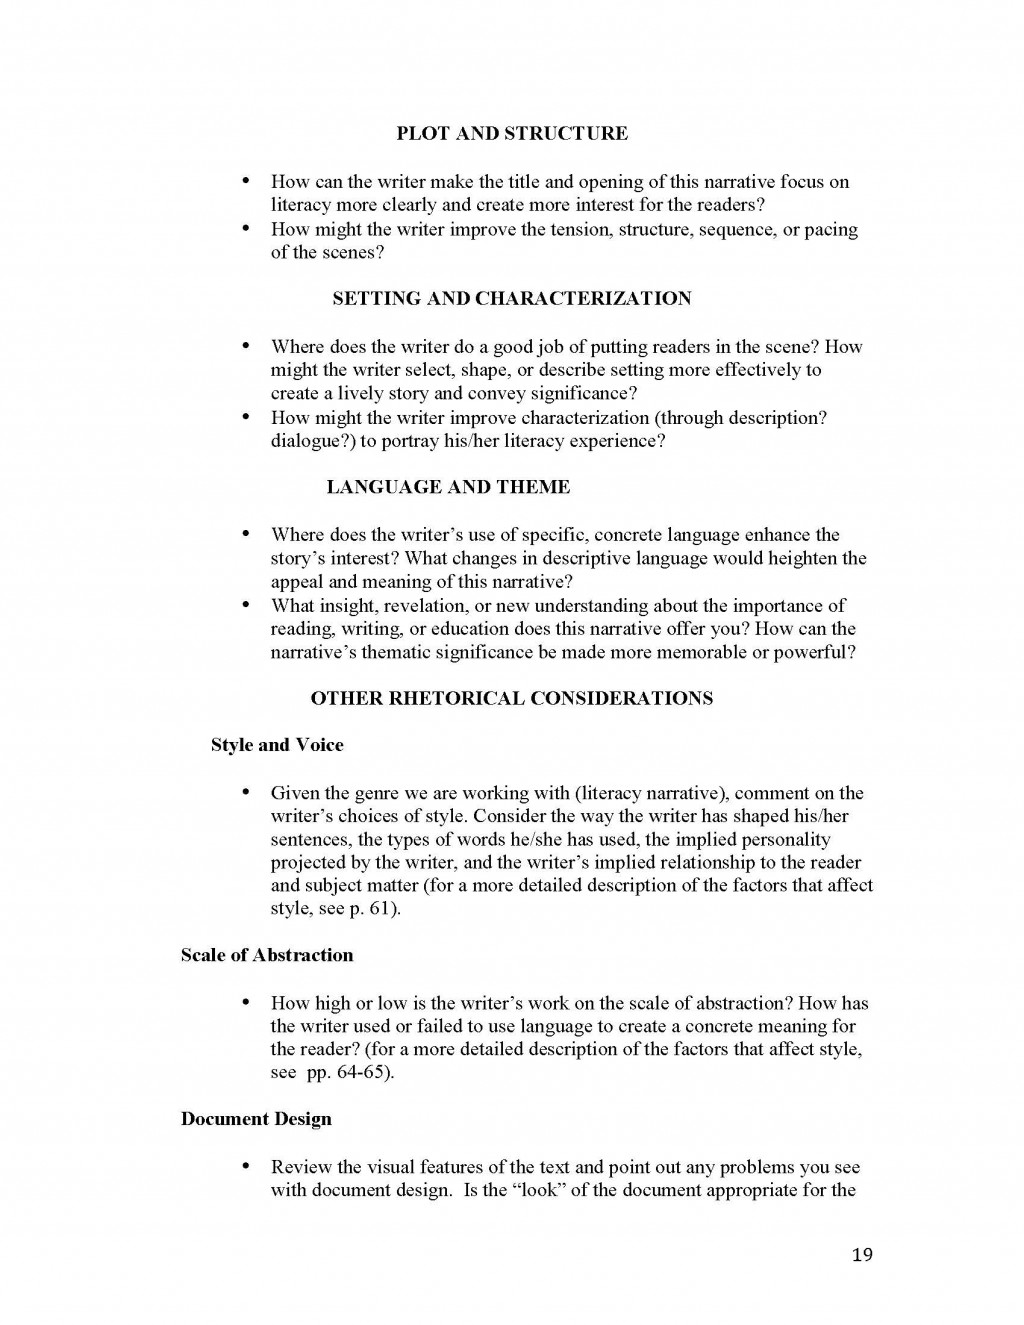 019 Narrative Essay Outline Unit 1 Literacy Instructor Copy Page 19 Impressive Doc Sample Large